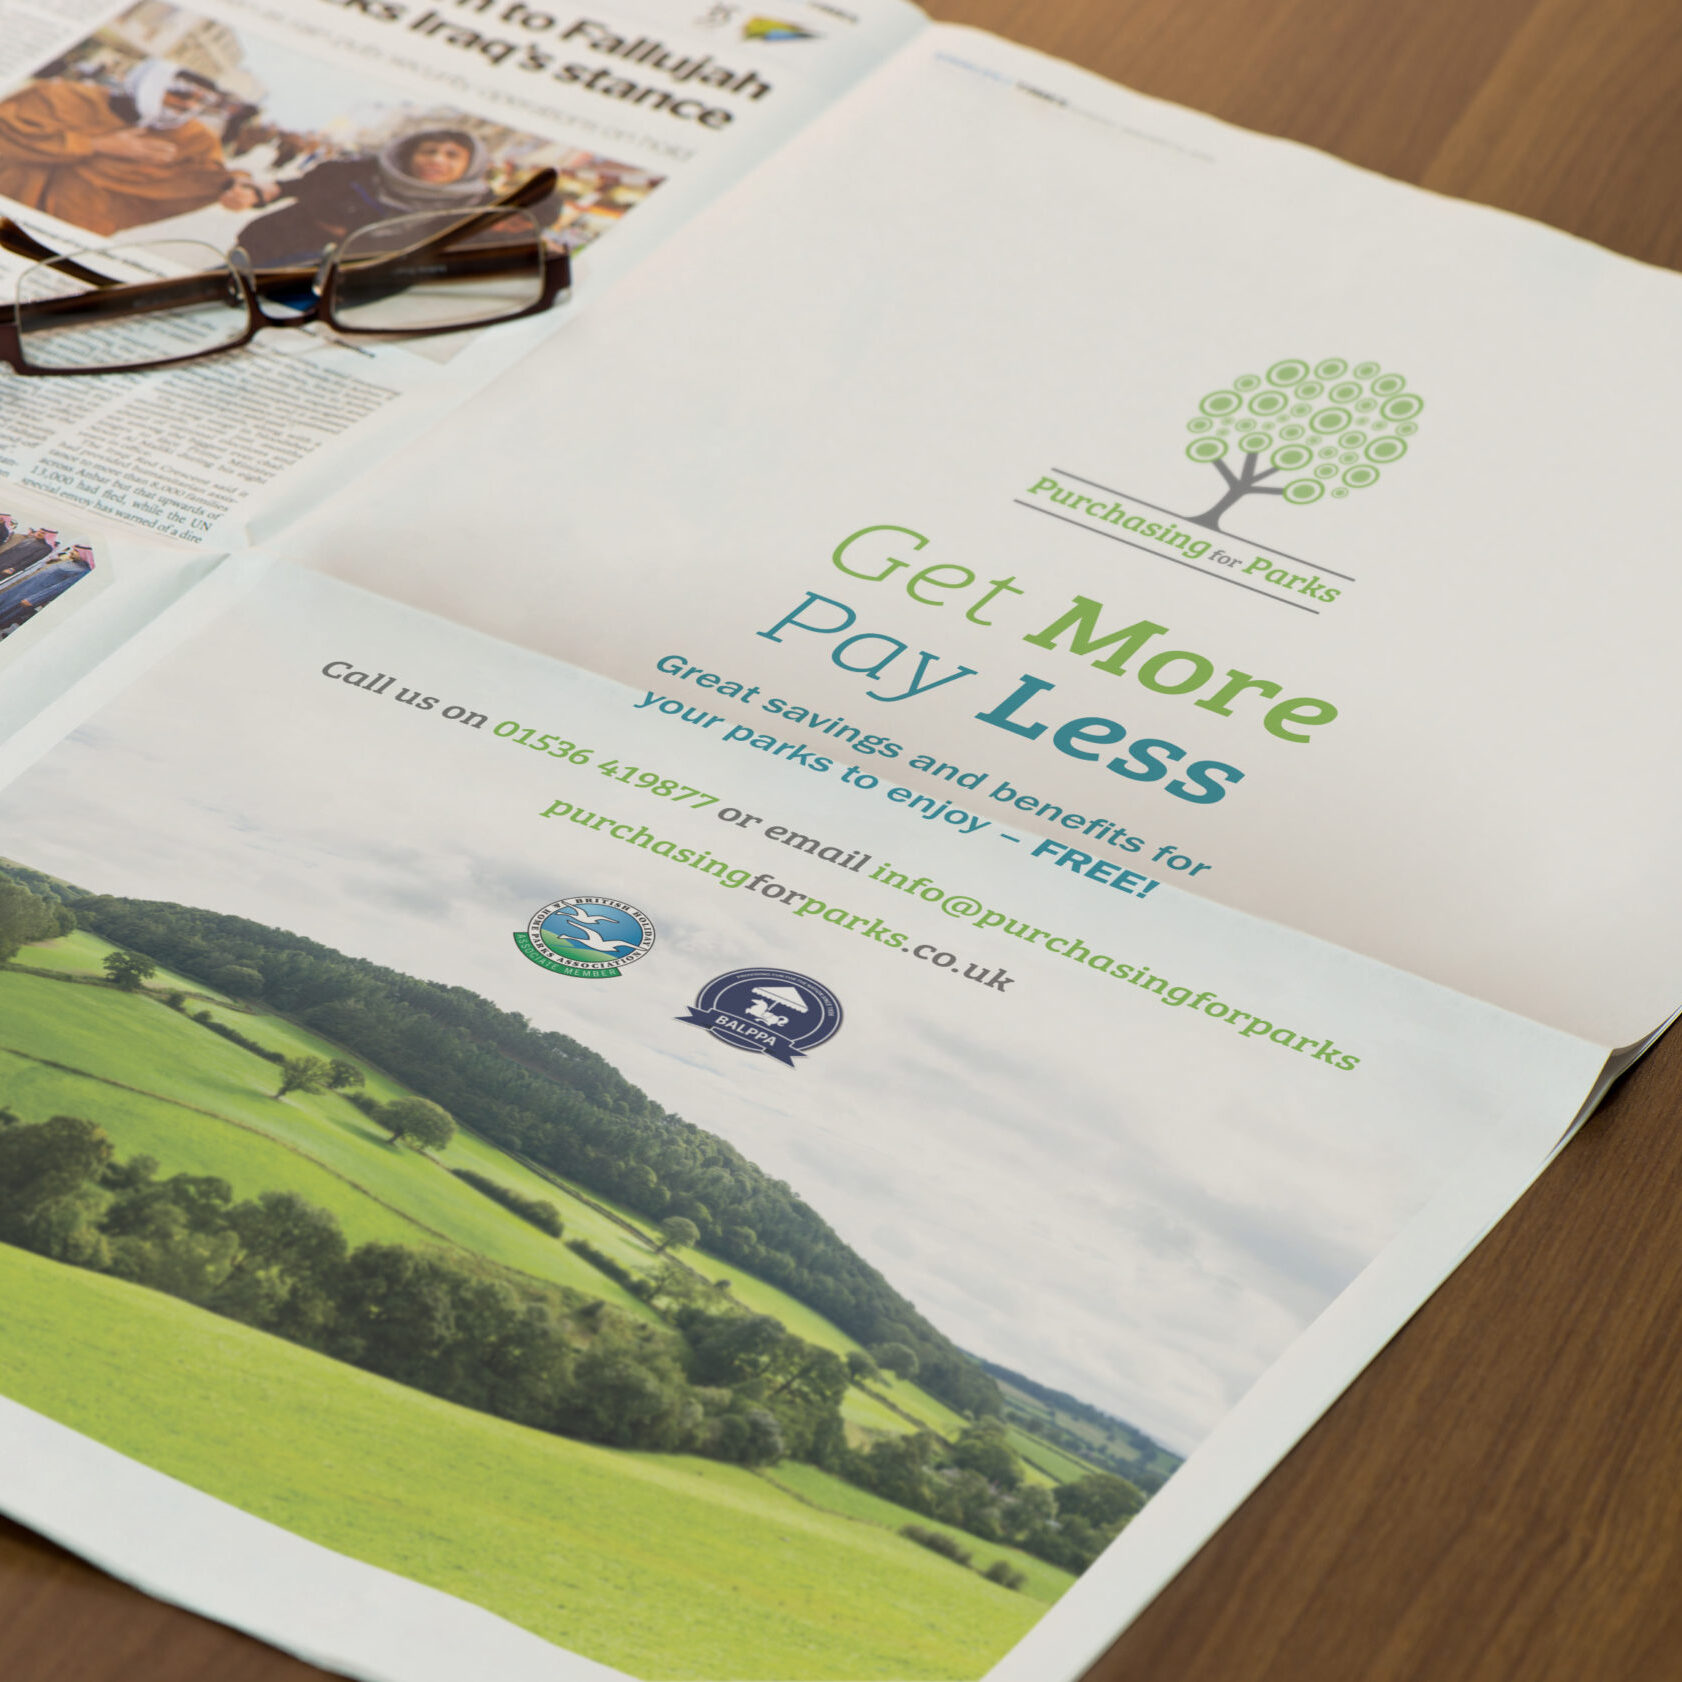 Tradeshow advert design for Purchasing for Parks